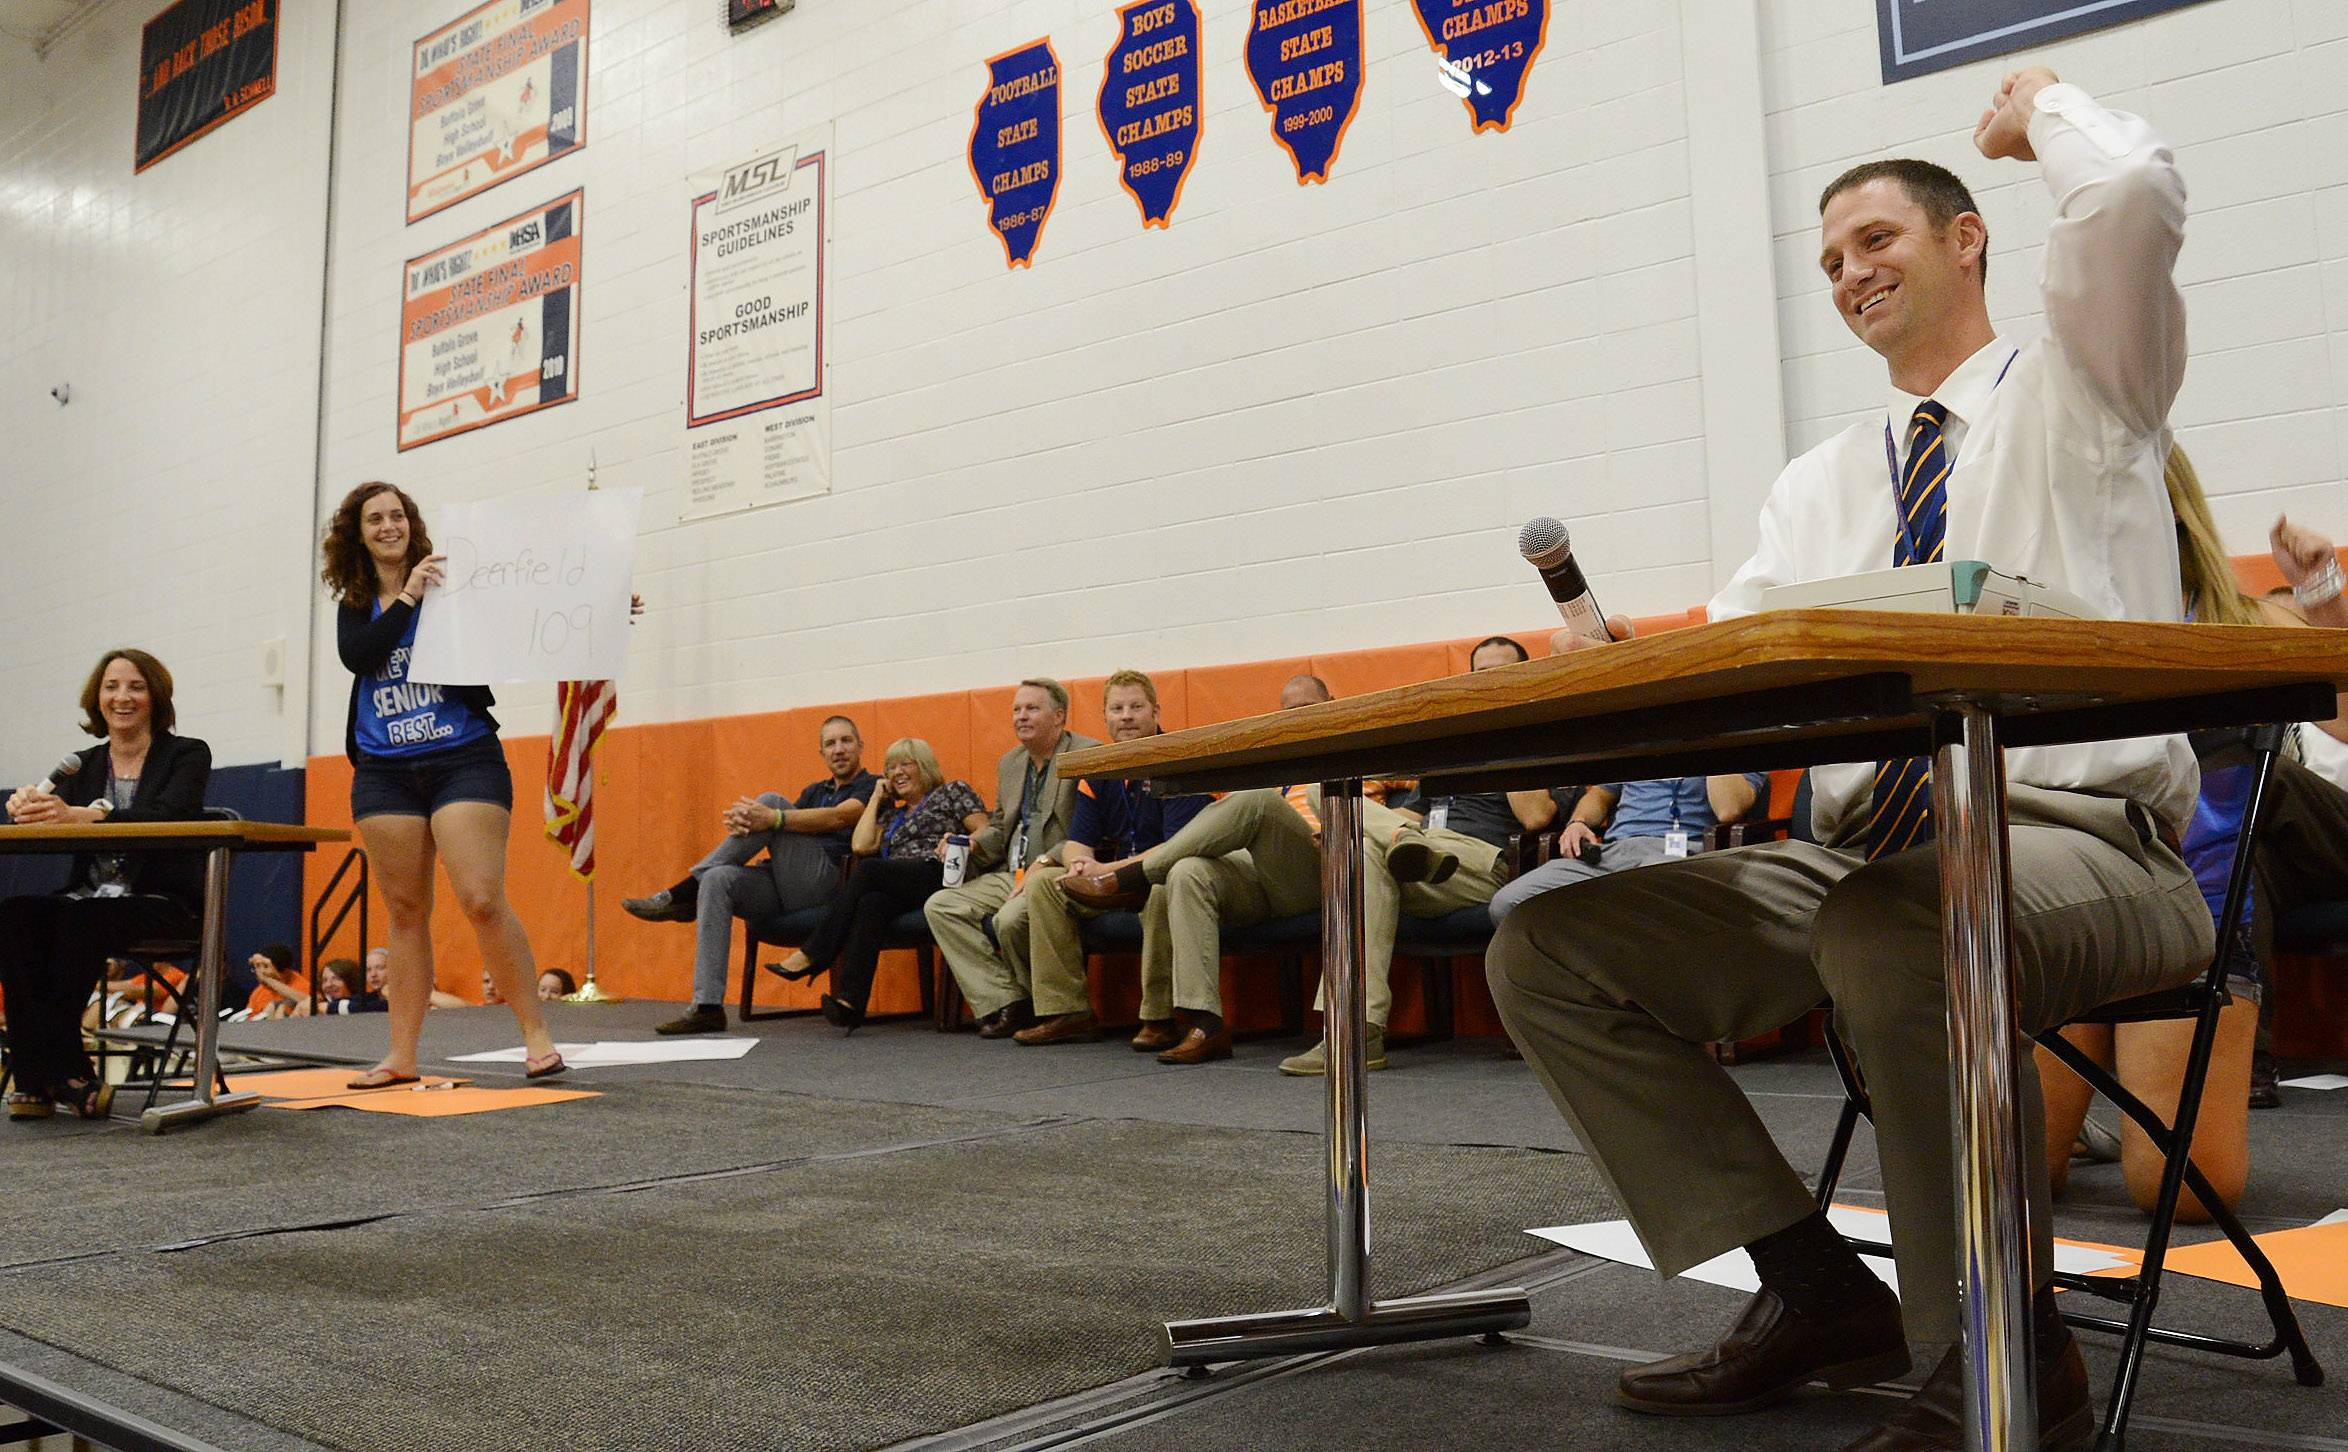 New Buffalo Grove High School principal Jeff Wardle, right, and associate principal Jill Maraldo, far left, compete in a game show answering  questions about themselves and how much knowledge they have of Buffalo Grove High School.